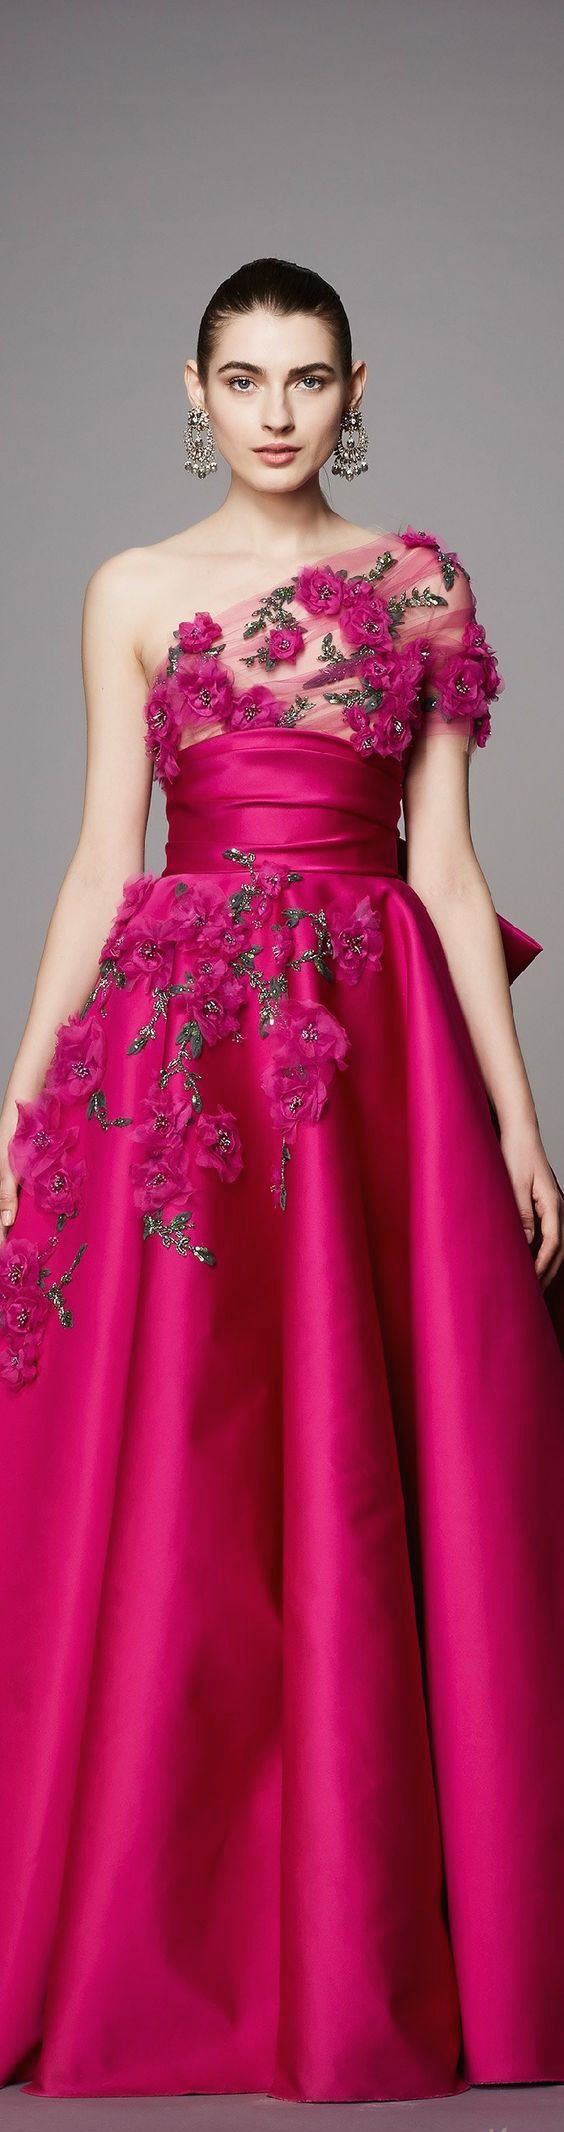 Chic and elegant cocktail dresses for weddings latest styles raspberry pink and 3 d embroidered roses on this stunning evening gown from the pre elegant cocktail dresscocktail ombrellifo Image collections